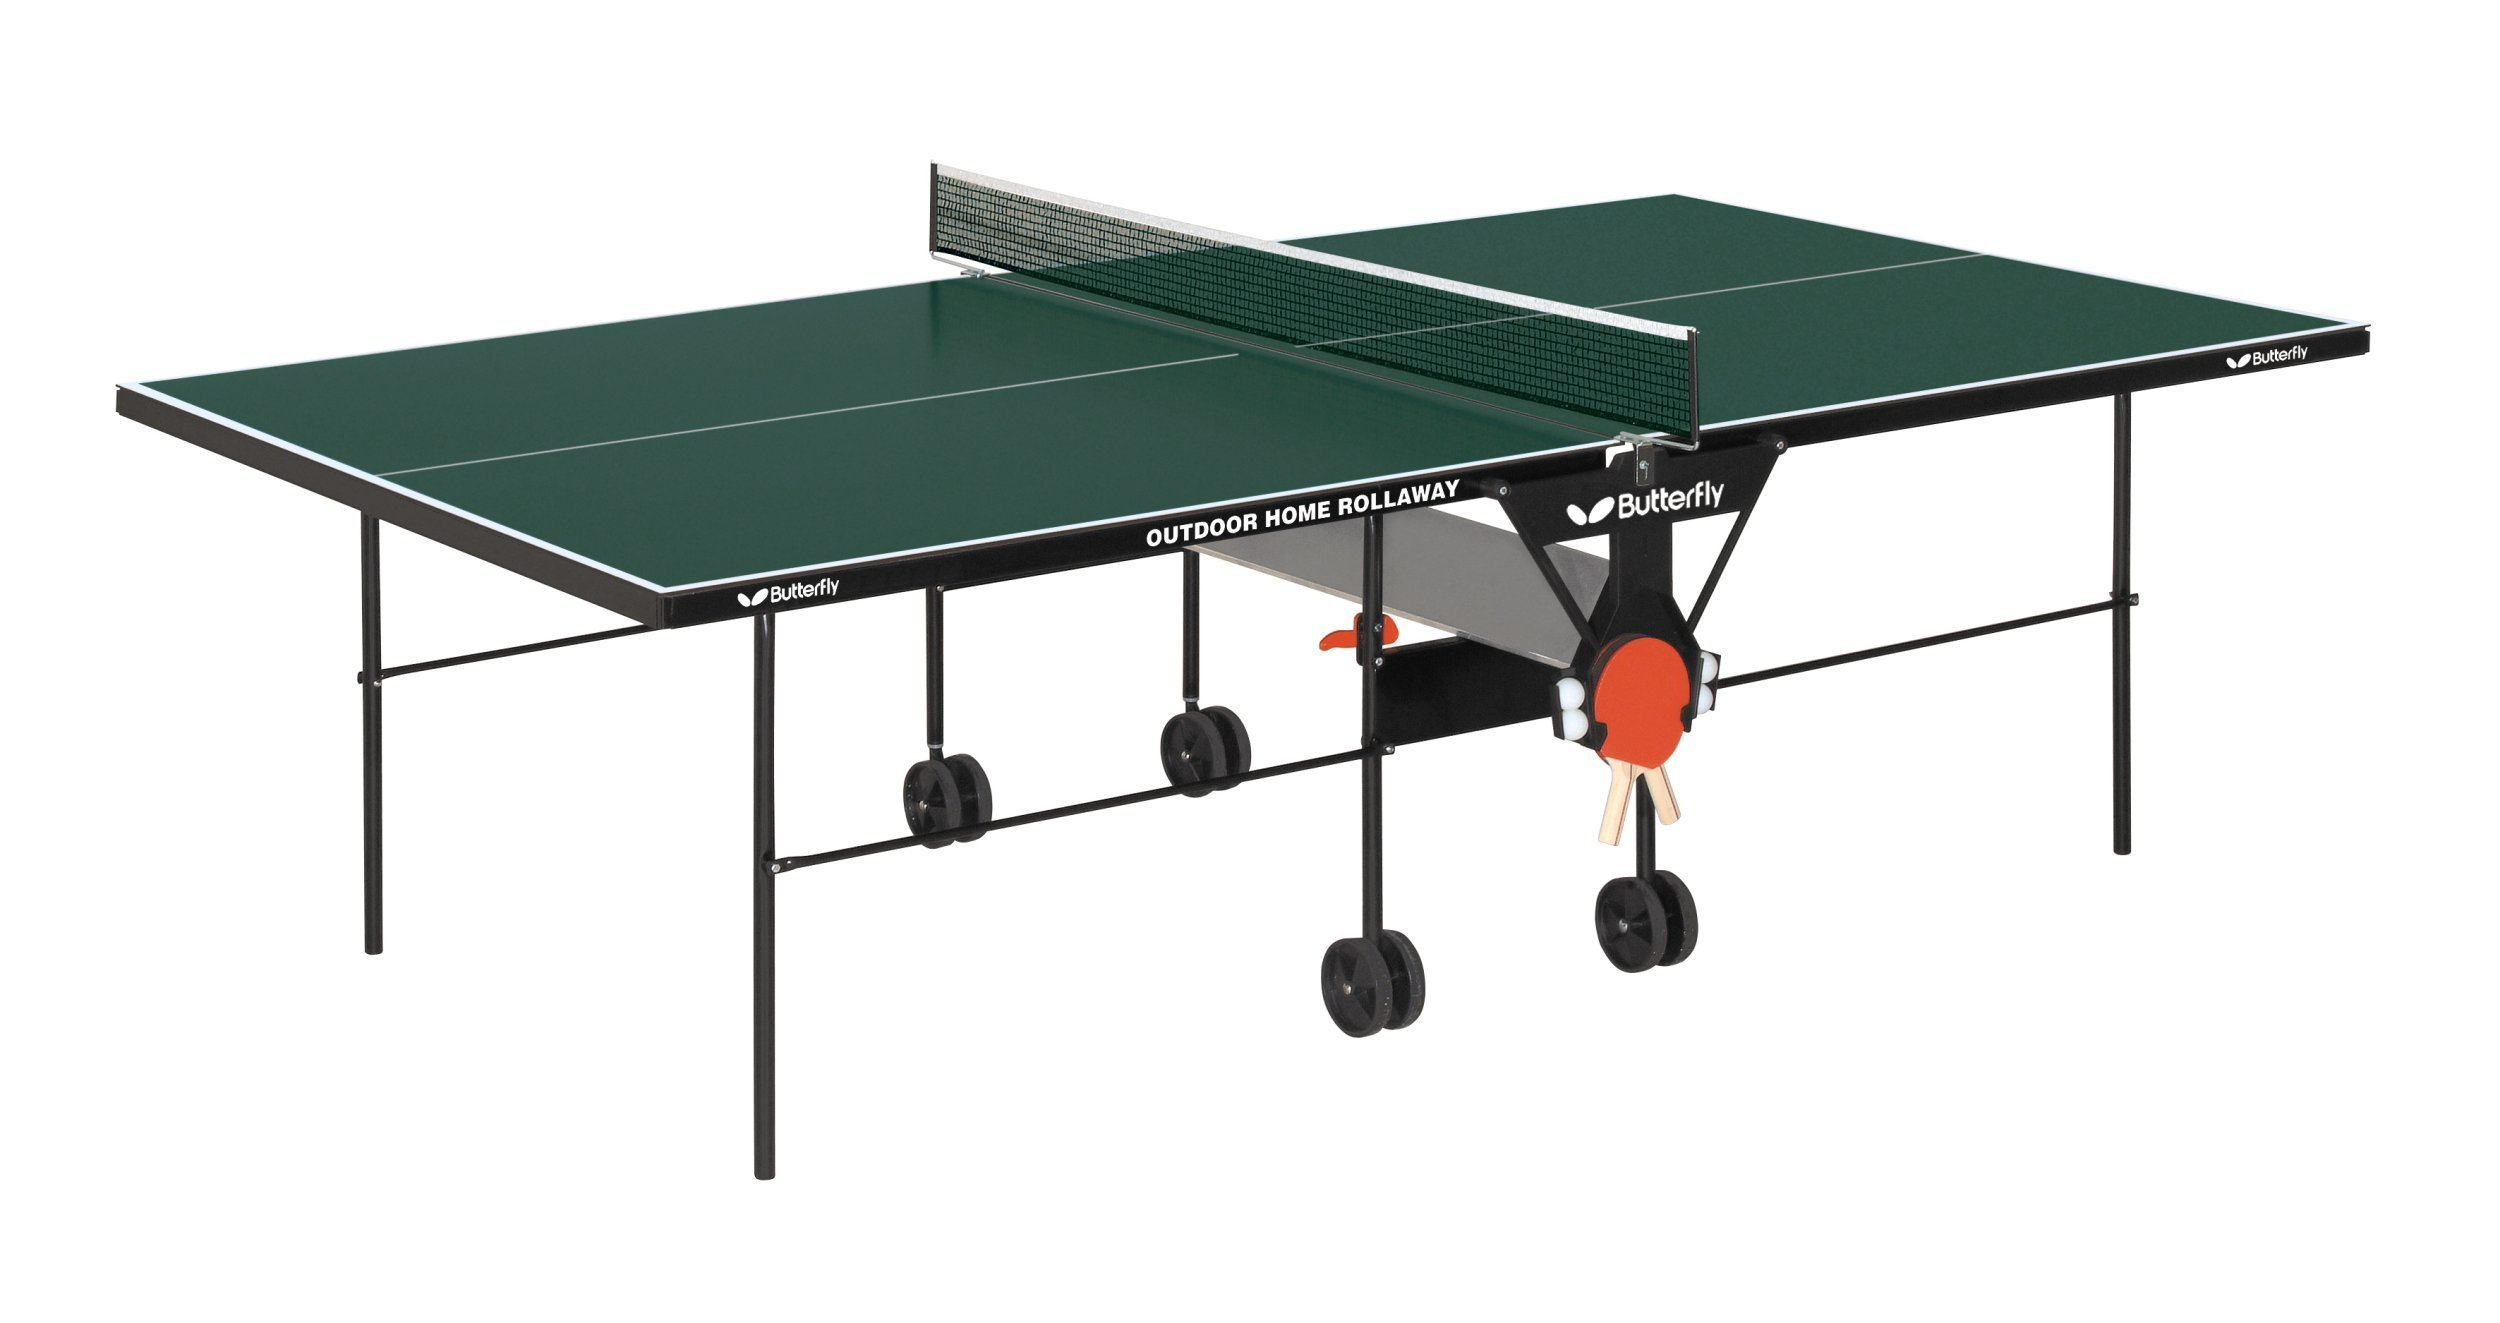 Butterfly Home Rollaway Indoor/Outdoor Table Tennis Table by Butterfly